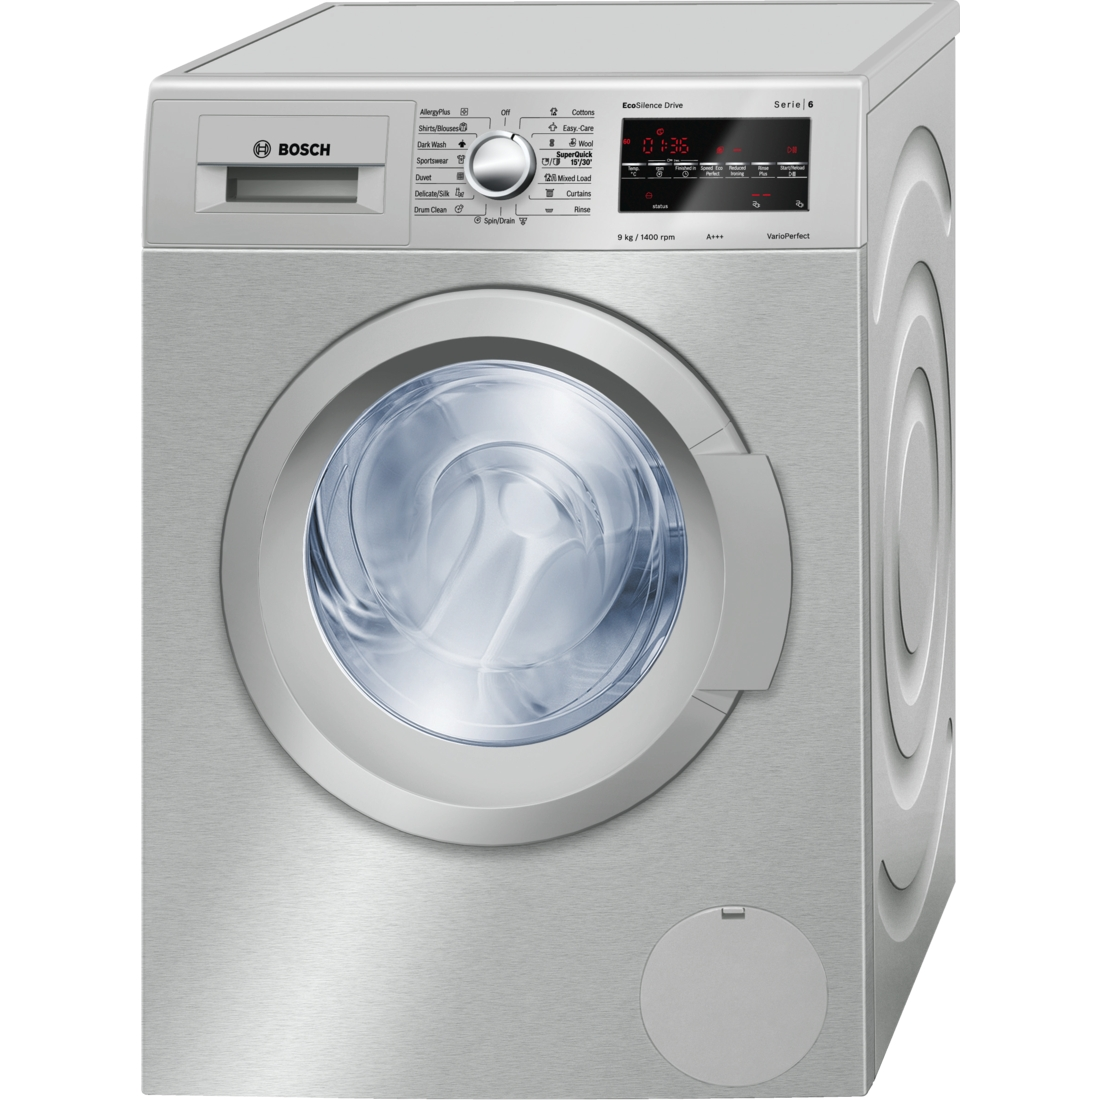 Bosch Wat2848xza Washing Machine Front Load 9kg Silver